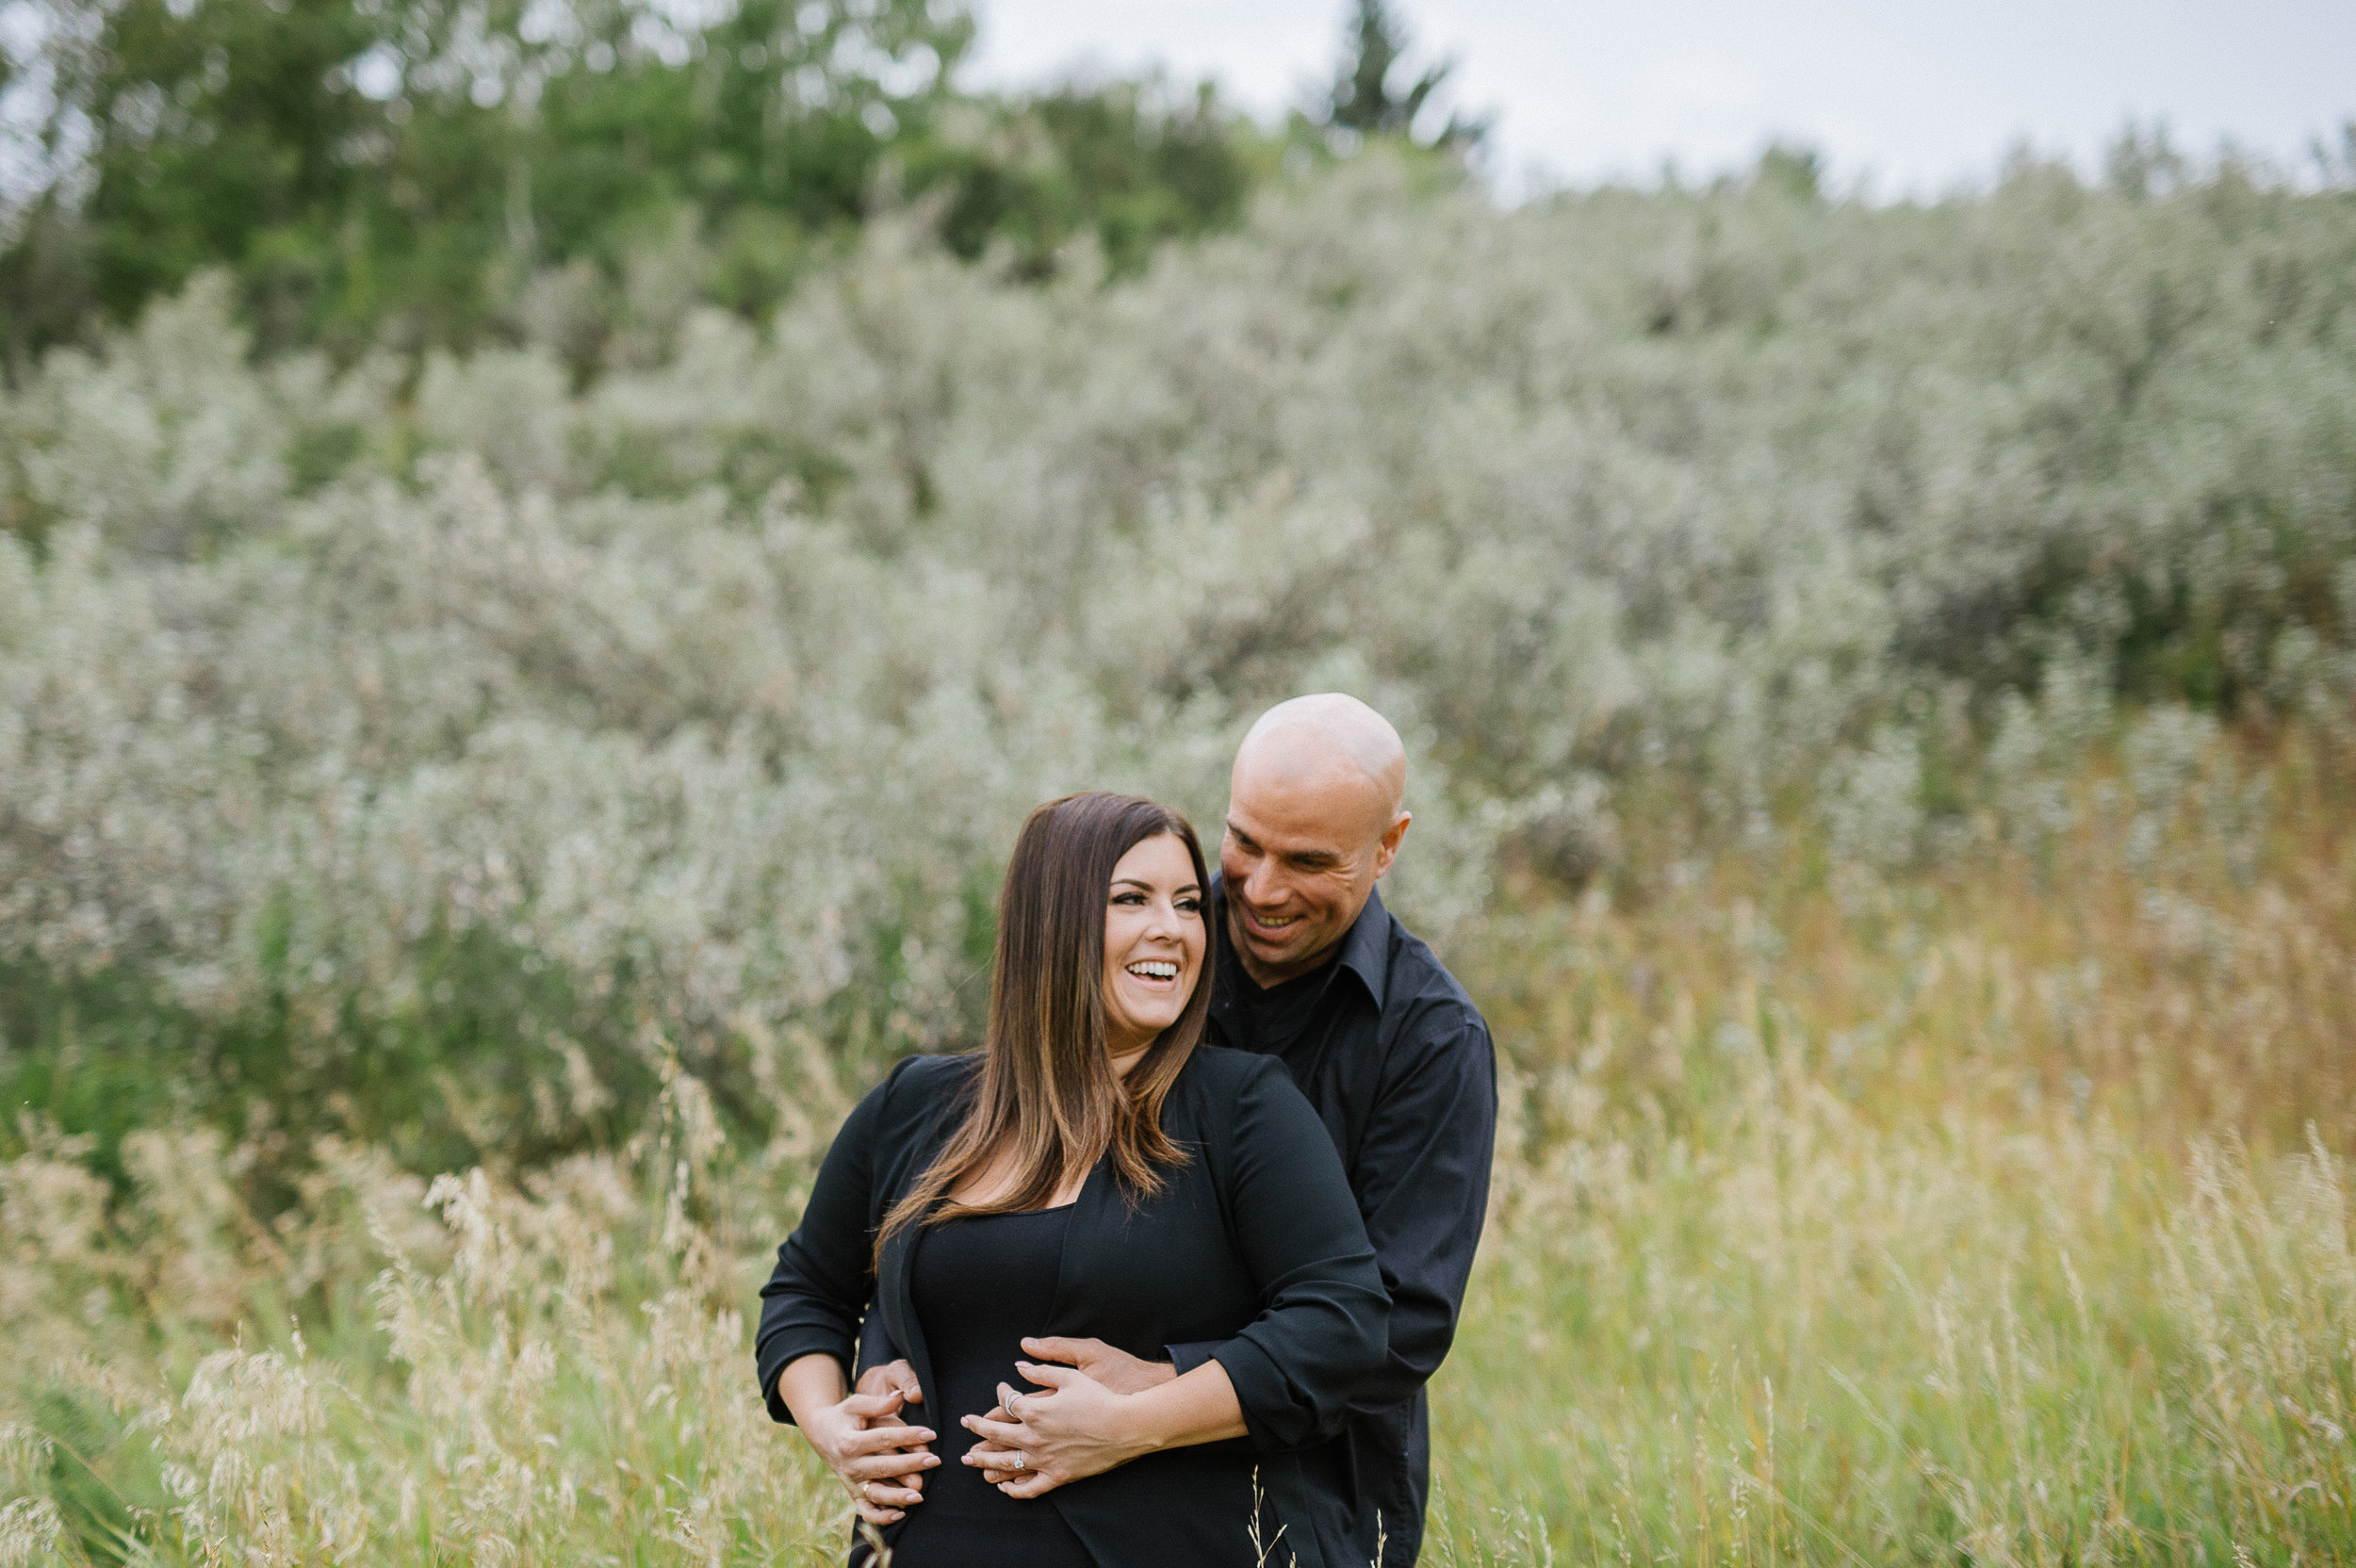 Calgary_Wedding_Photography_Cassandra_Derek_Engagements_2017_HR 0019.jpg